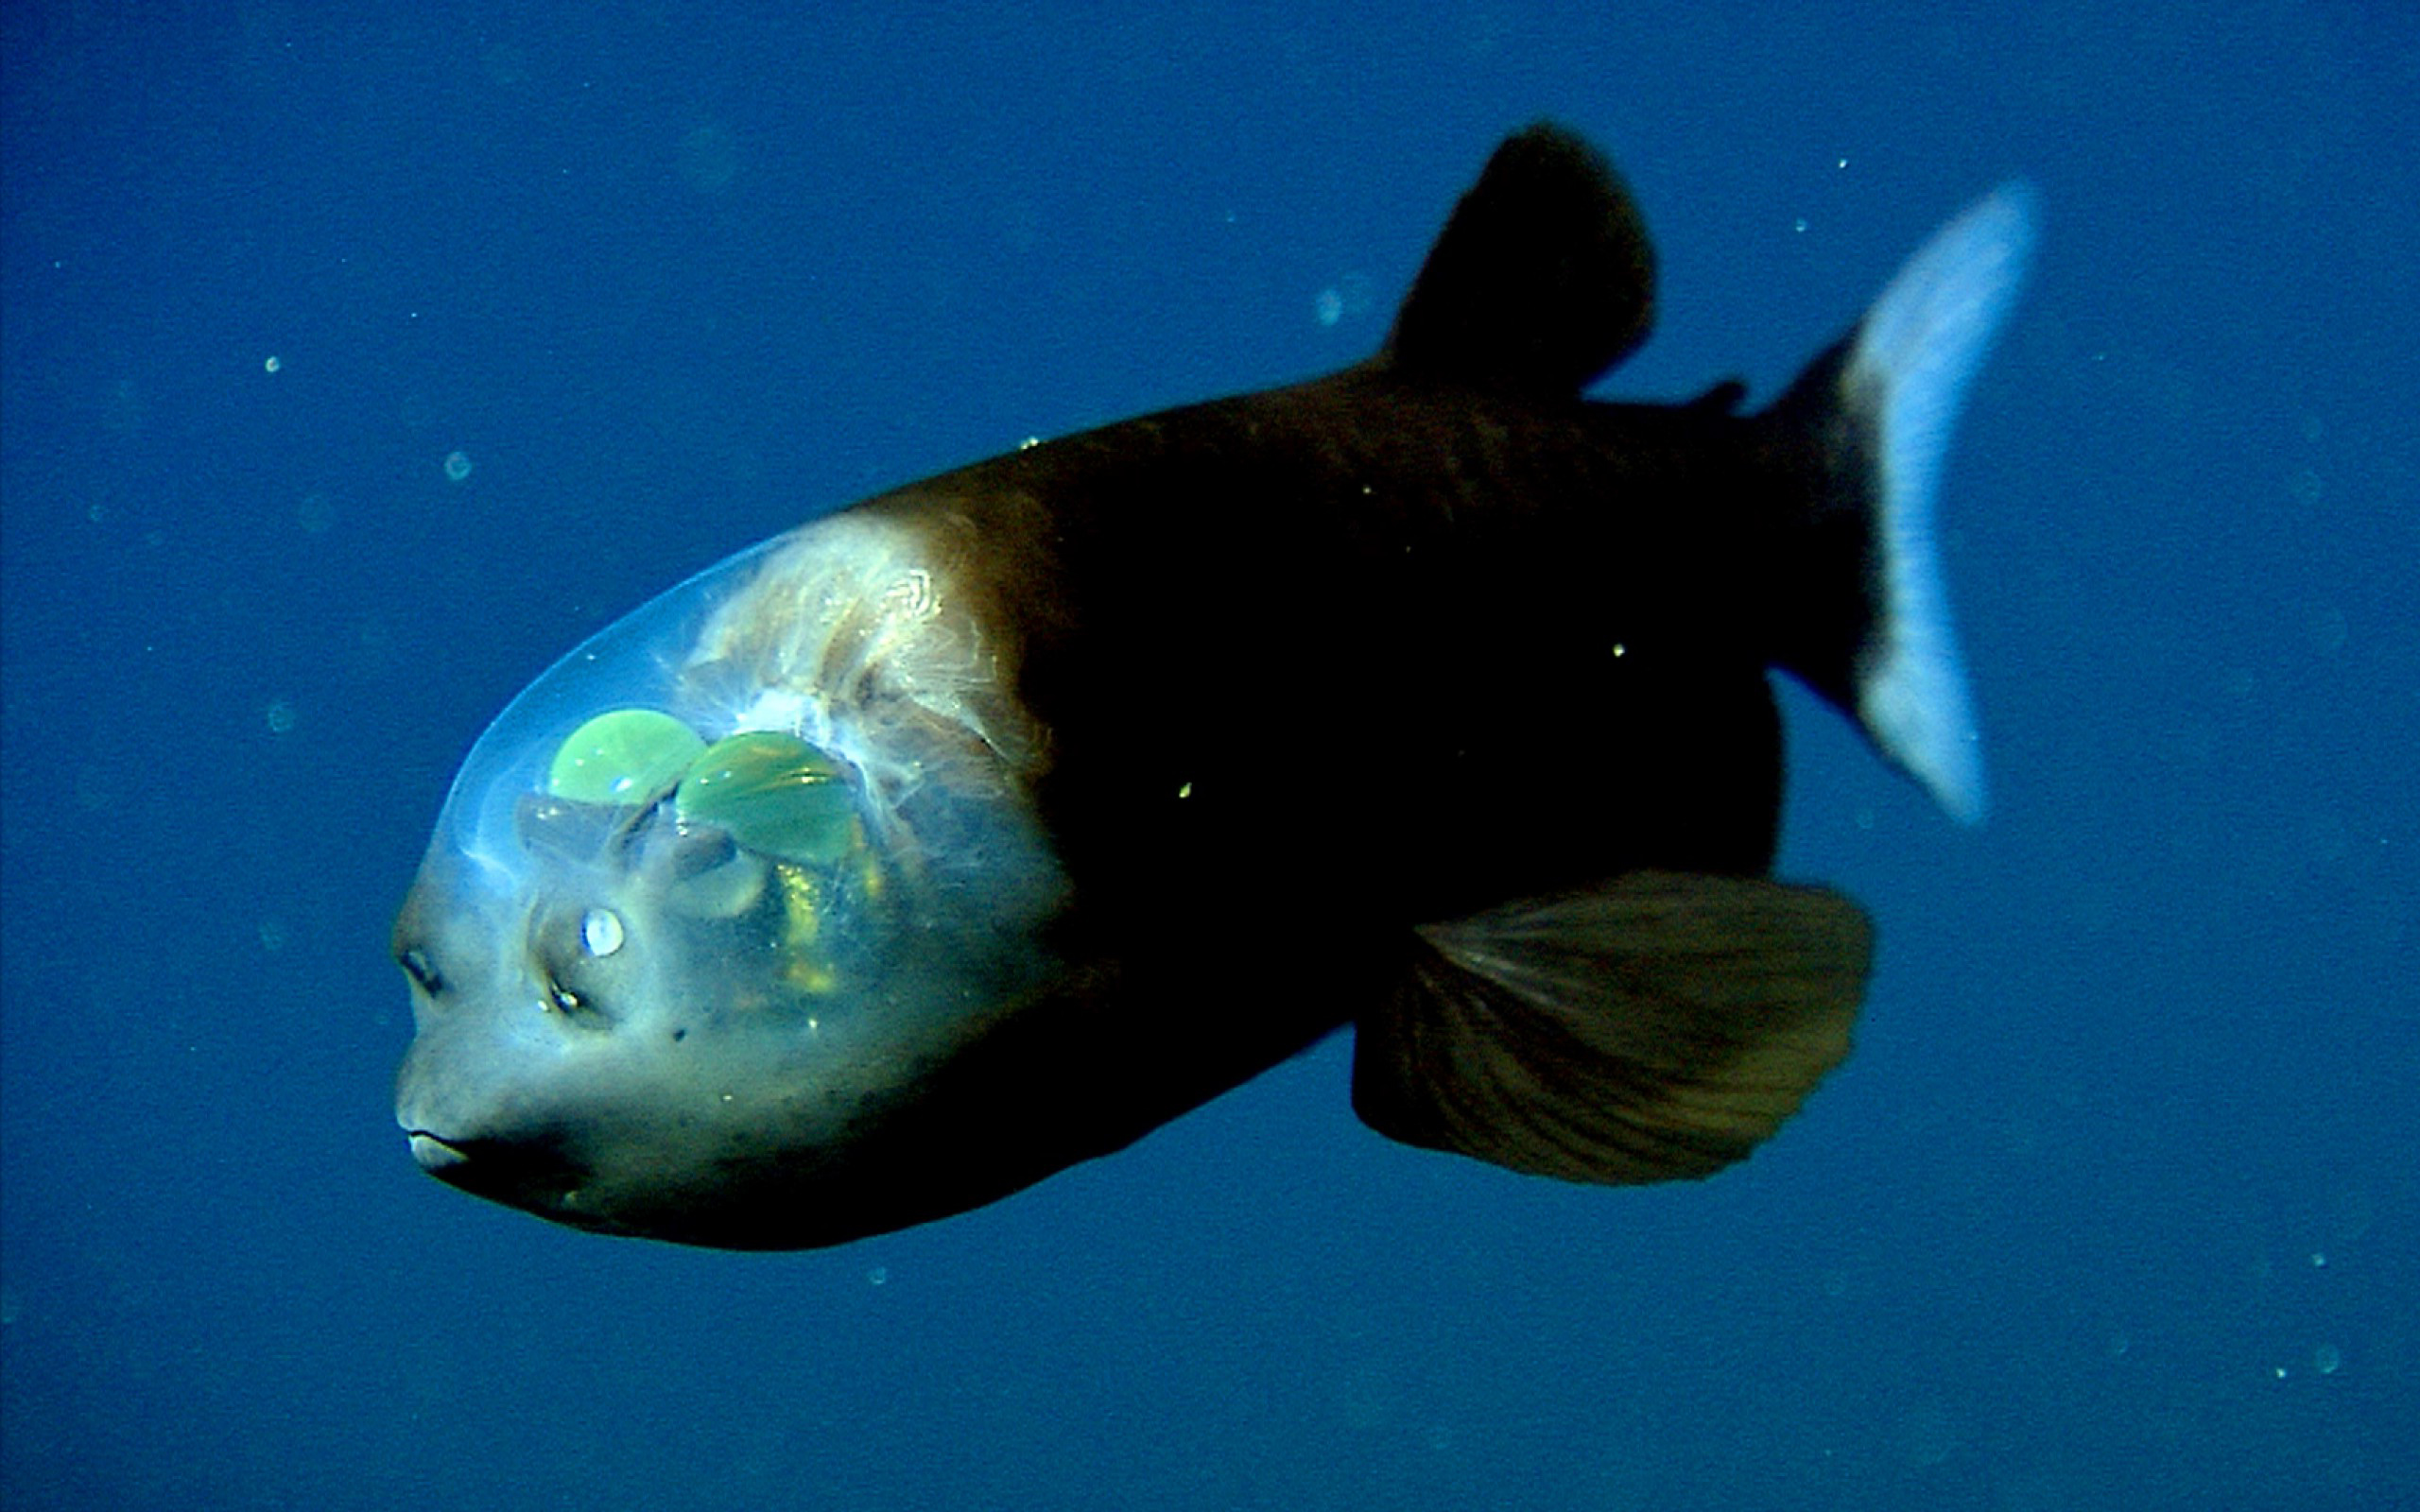 Barreleye Un Poisson La Tte Transparente ScienceJuniorfr